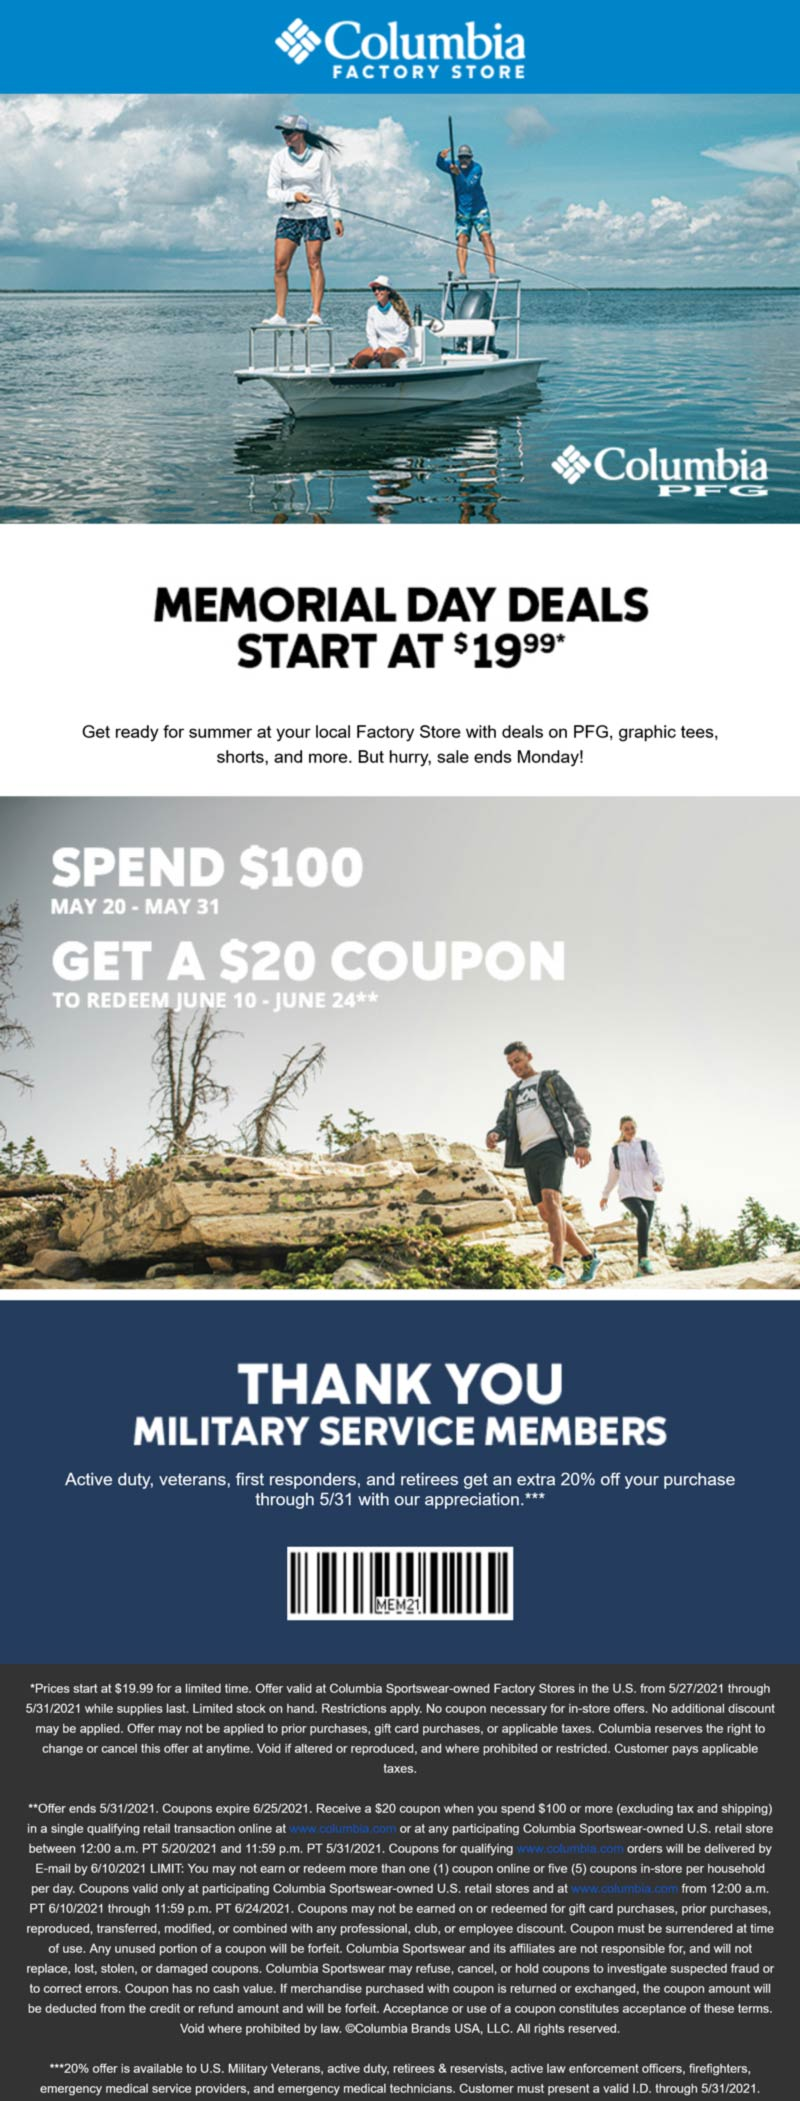 Columbia Factory Store stores Coupon  Heroes enjoy 20% off at Columbia Factory Store #columbiafactorystore